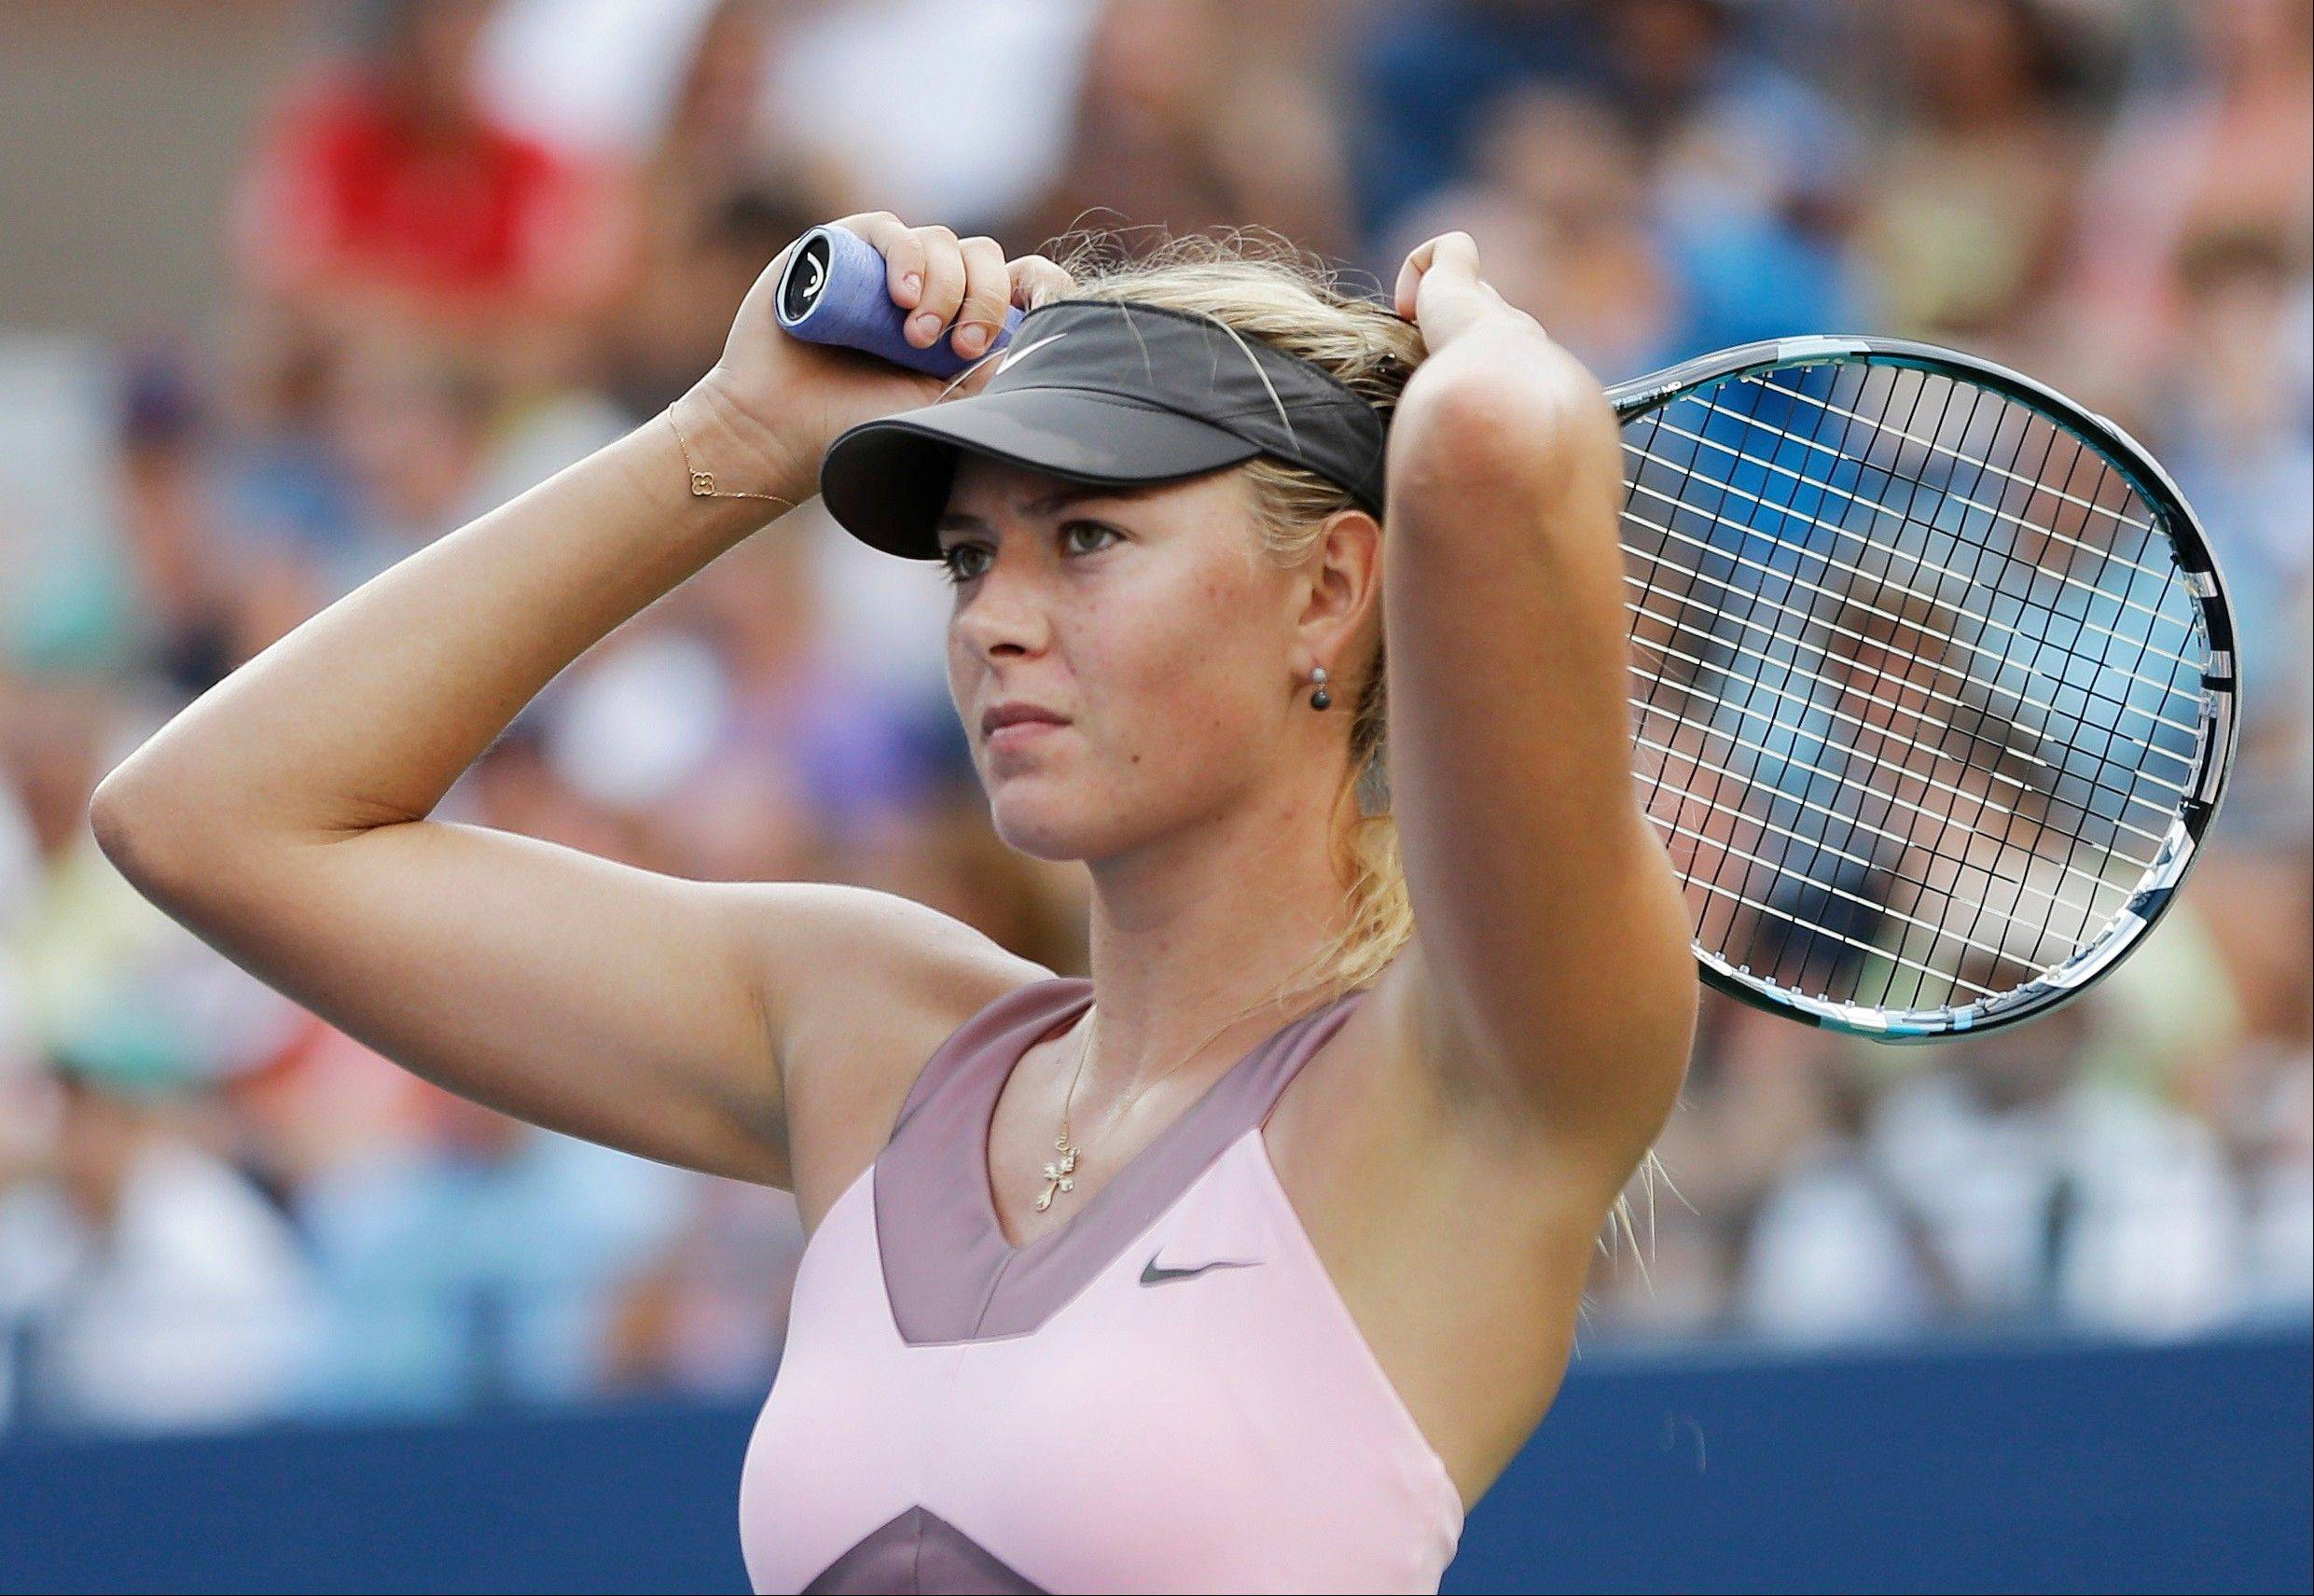 Maria Sharapova reacts after losing her match against Victoria Azarenka on Friday during the semifinals of the U.S. Open in New York.